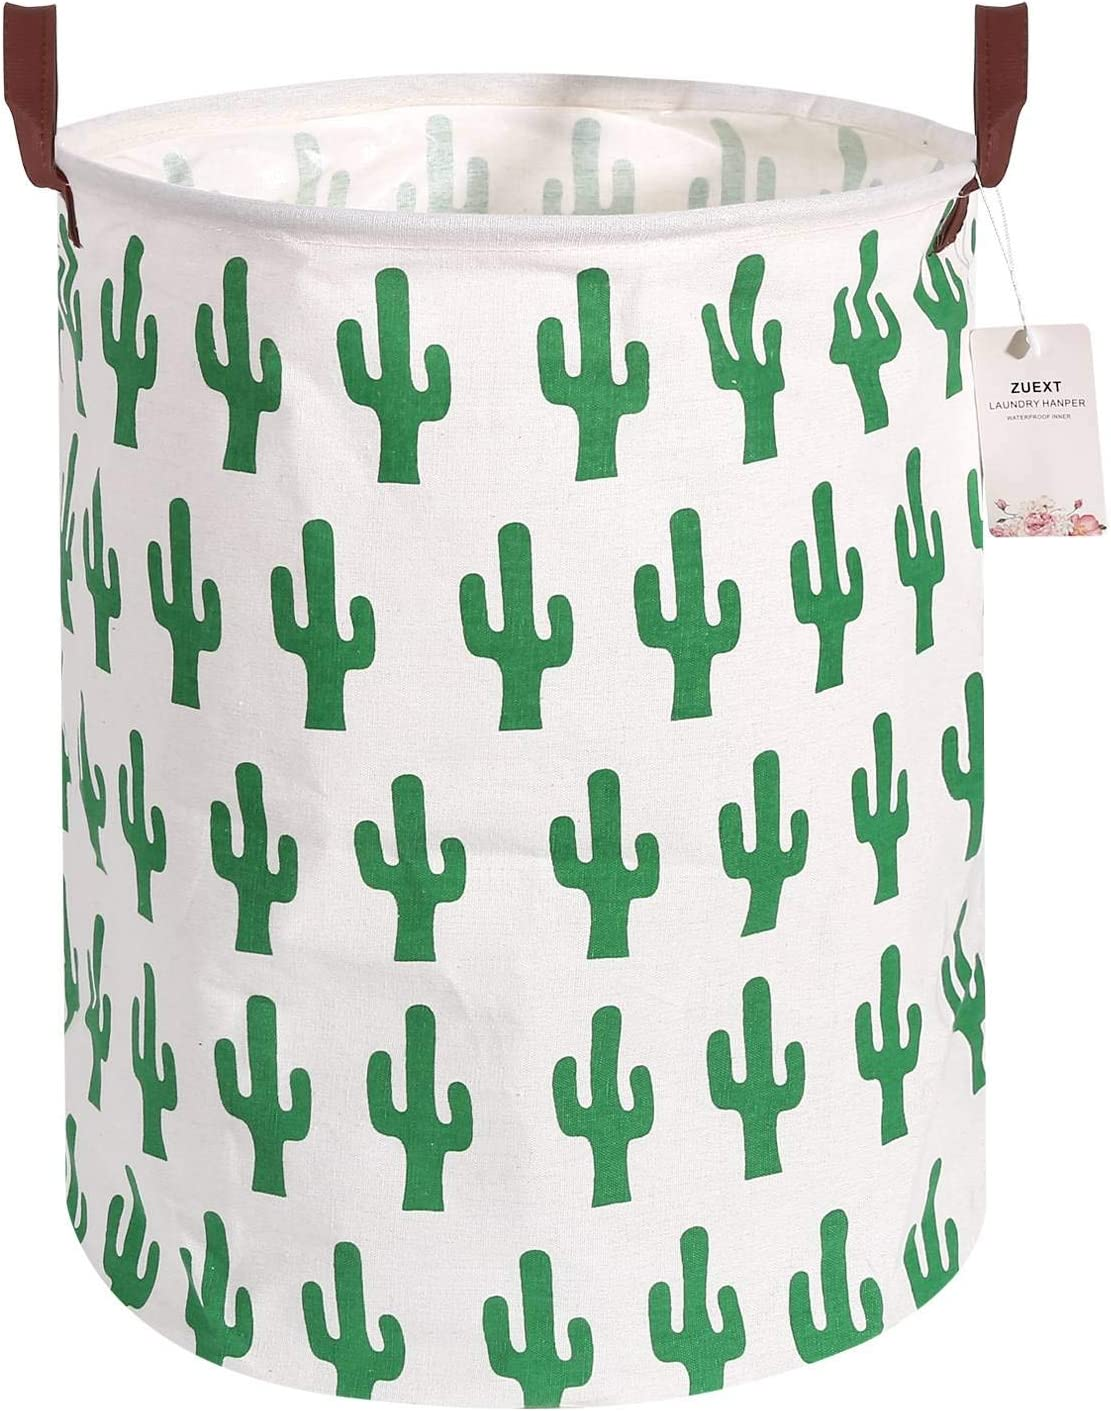 Large Storage Bins 19.7x15.7 Inch, ZUEXT Waterproof Foldable Cotton Canvas Fabric Storage Bin, Collapsible Round Clothes Laundry Hamper w/Leather Handles, Cactus Storage Basket, Toy Books Holder